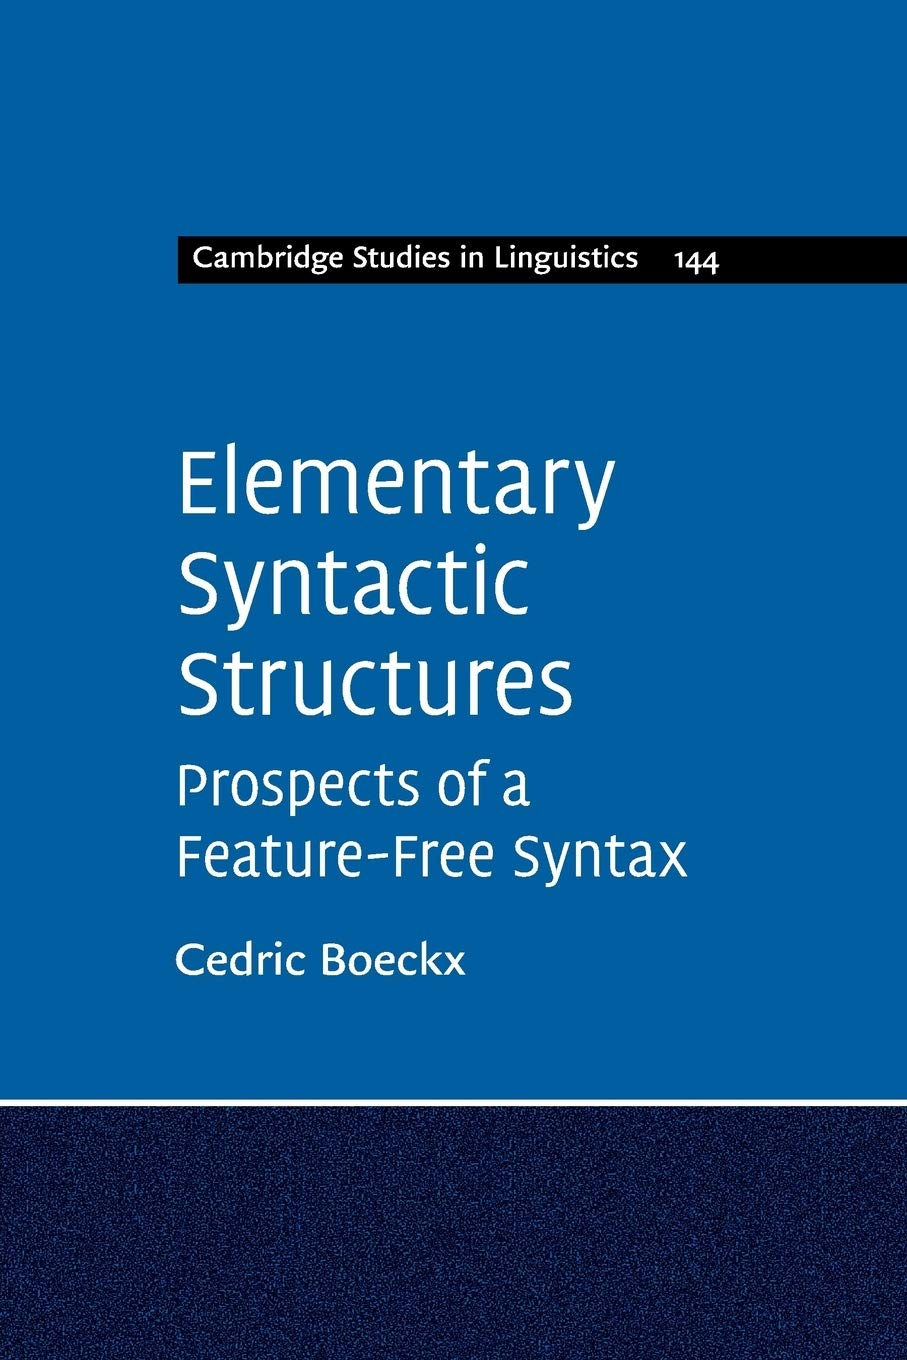 Elementary Syntactic Structures Prospects Of A Feature Free Syntax Cambridge Studies In Linguistics Boeckx Cedric 9781316645376 Amazon Com Books